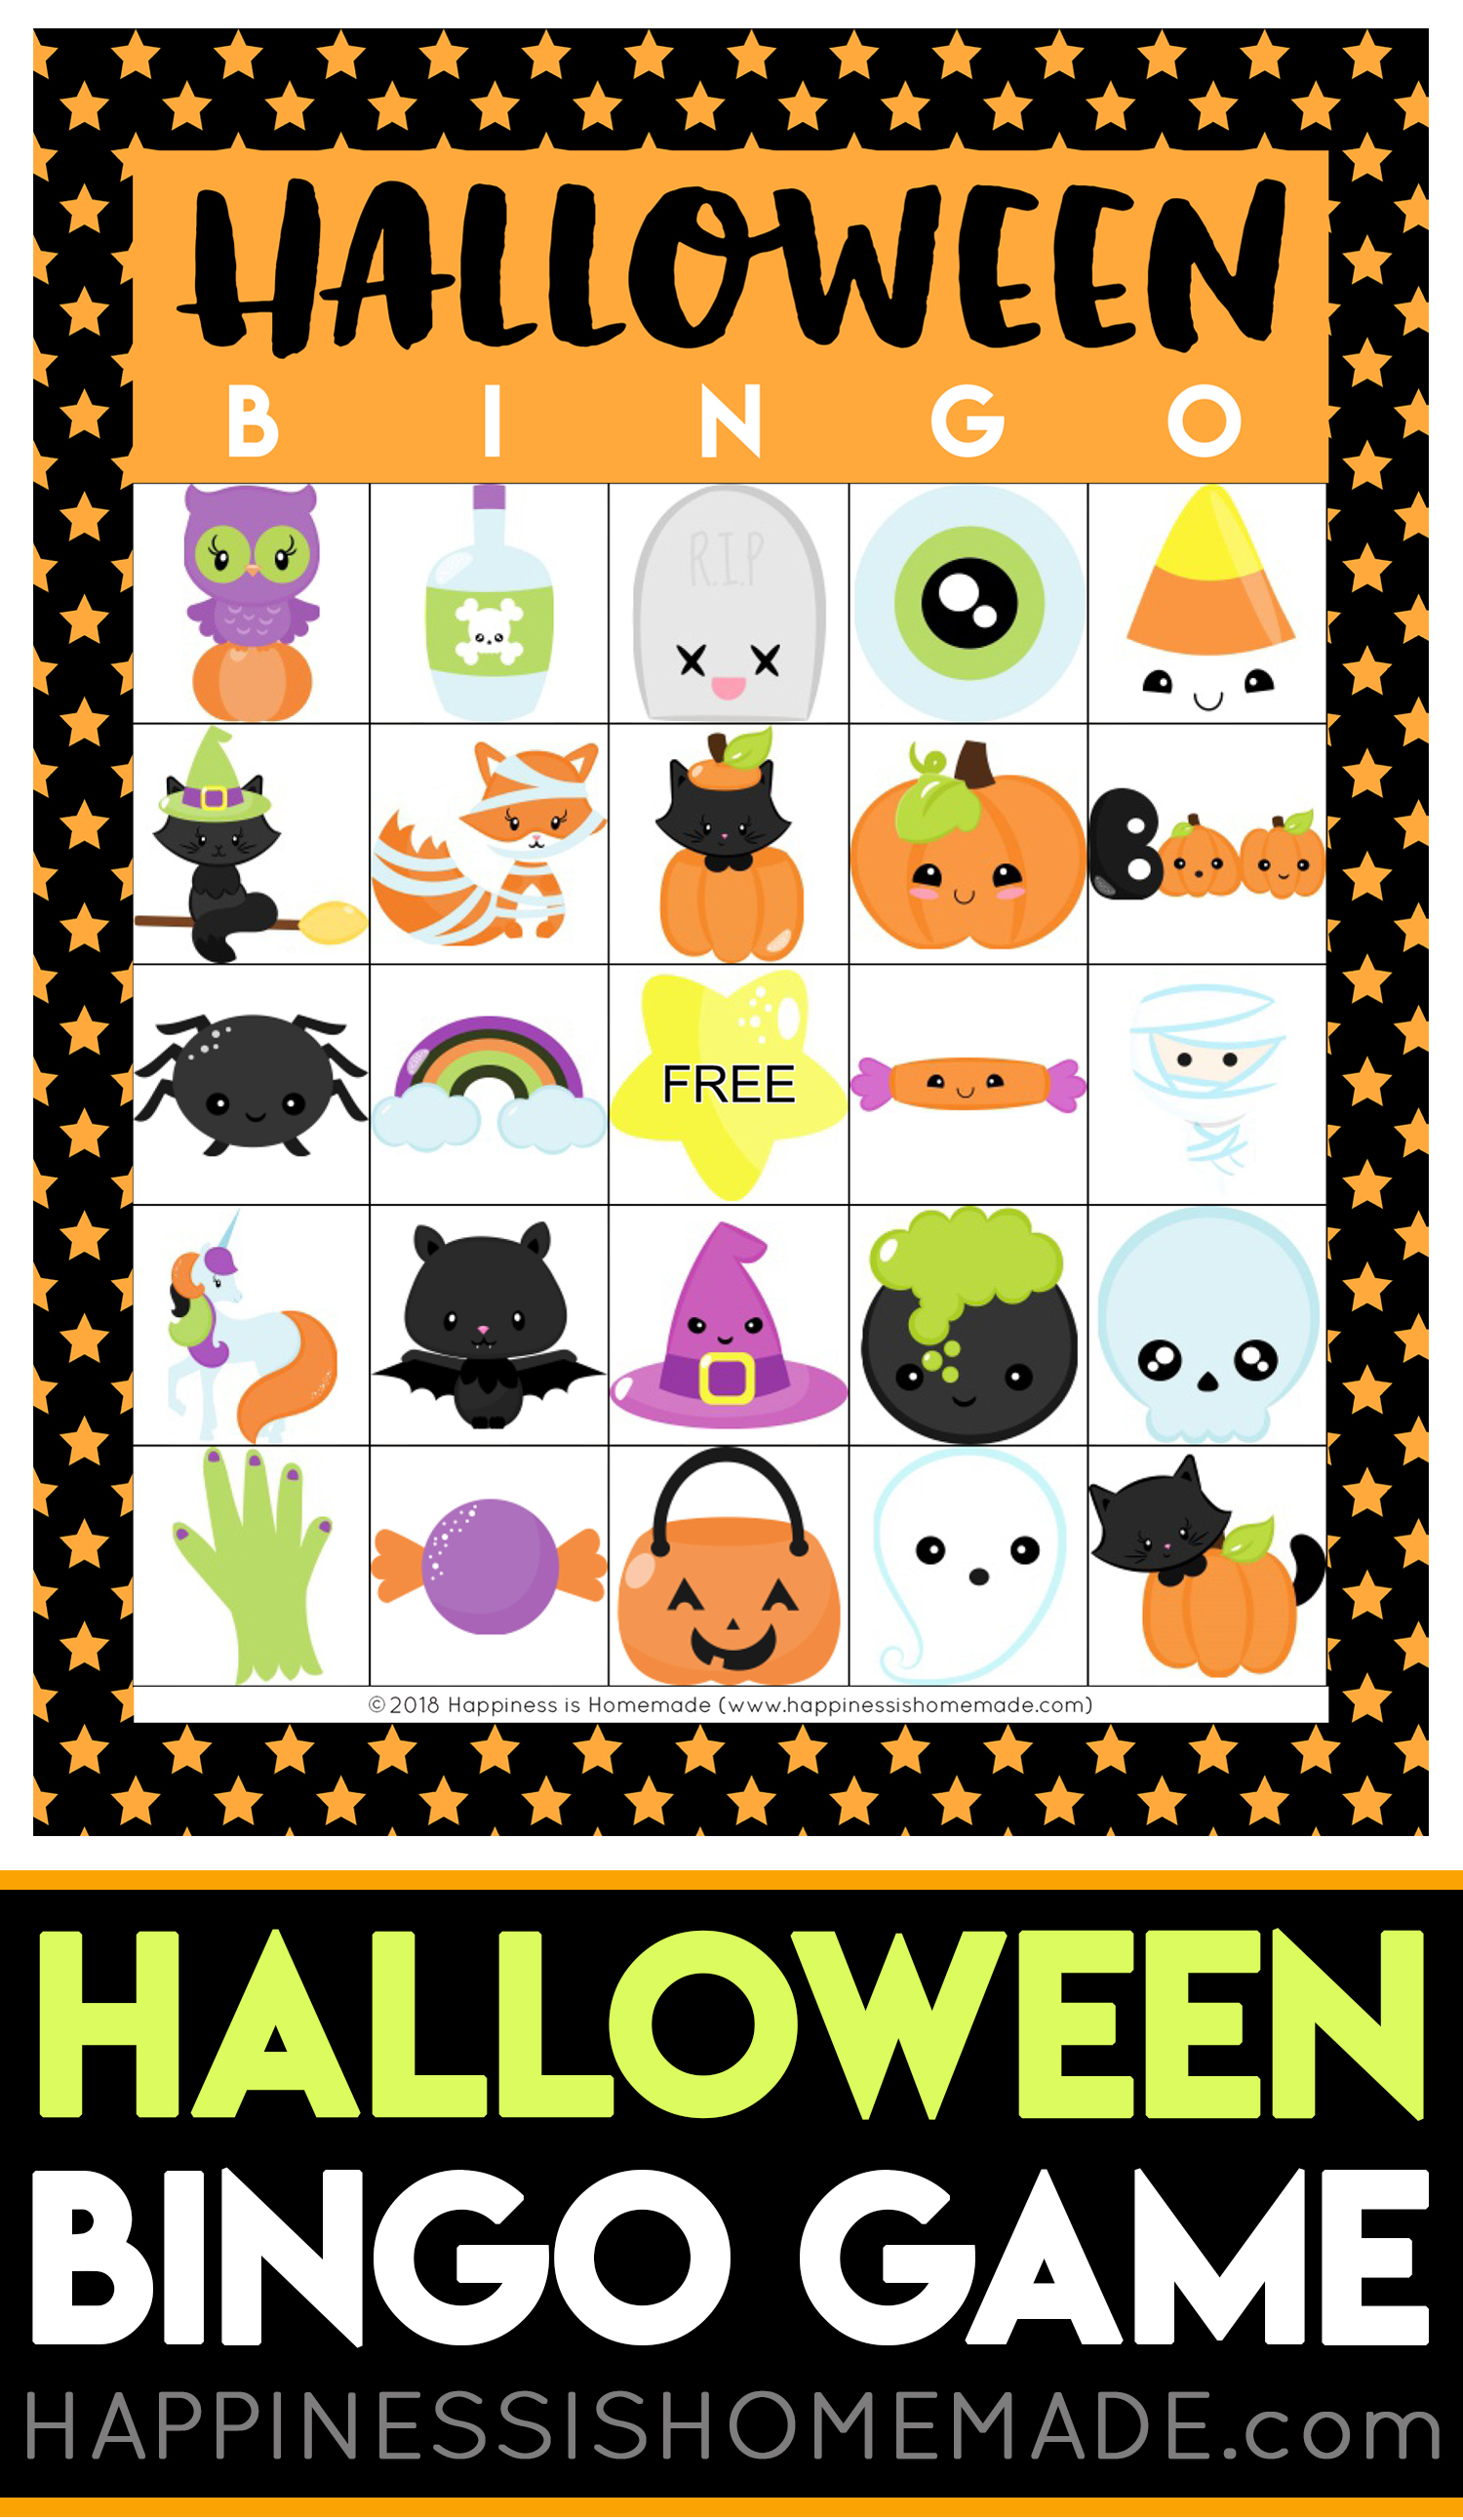 photograph regarding Printable Halloween Bingo called Printable Halloween Bingo Playing cards - Joy is Home made